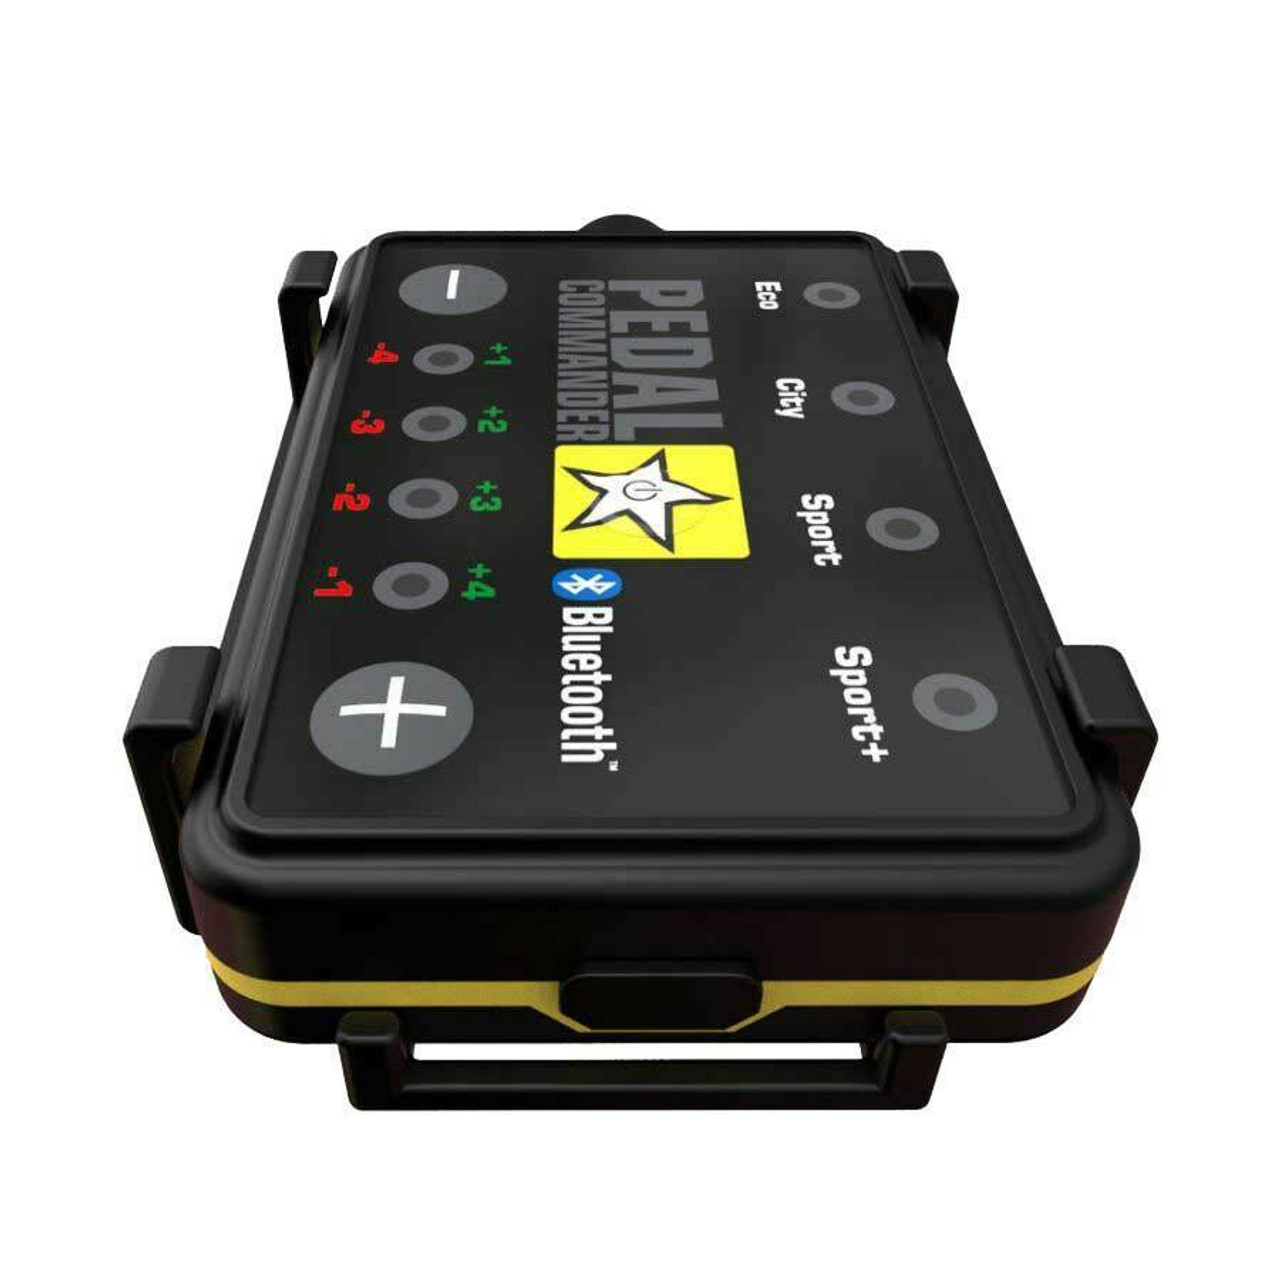 PEDAL COMMANDER THROTTLE CONTROLLER FOR 2019-2020 RAM 1500 NEW BODY STYLE PC78